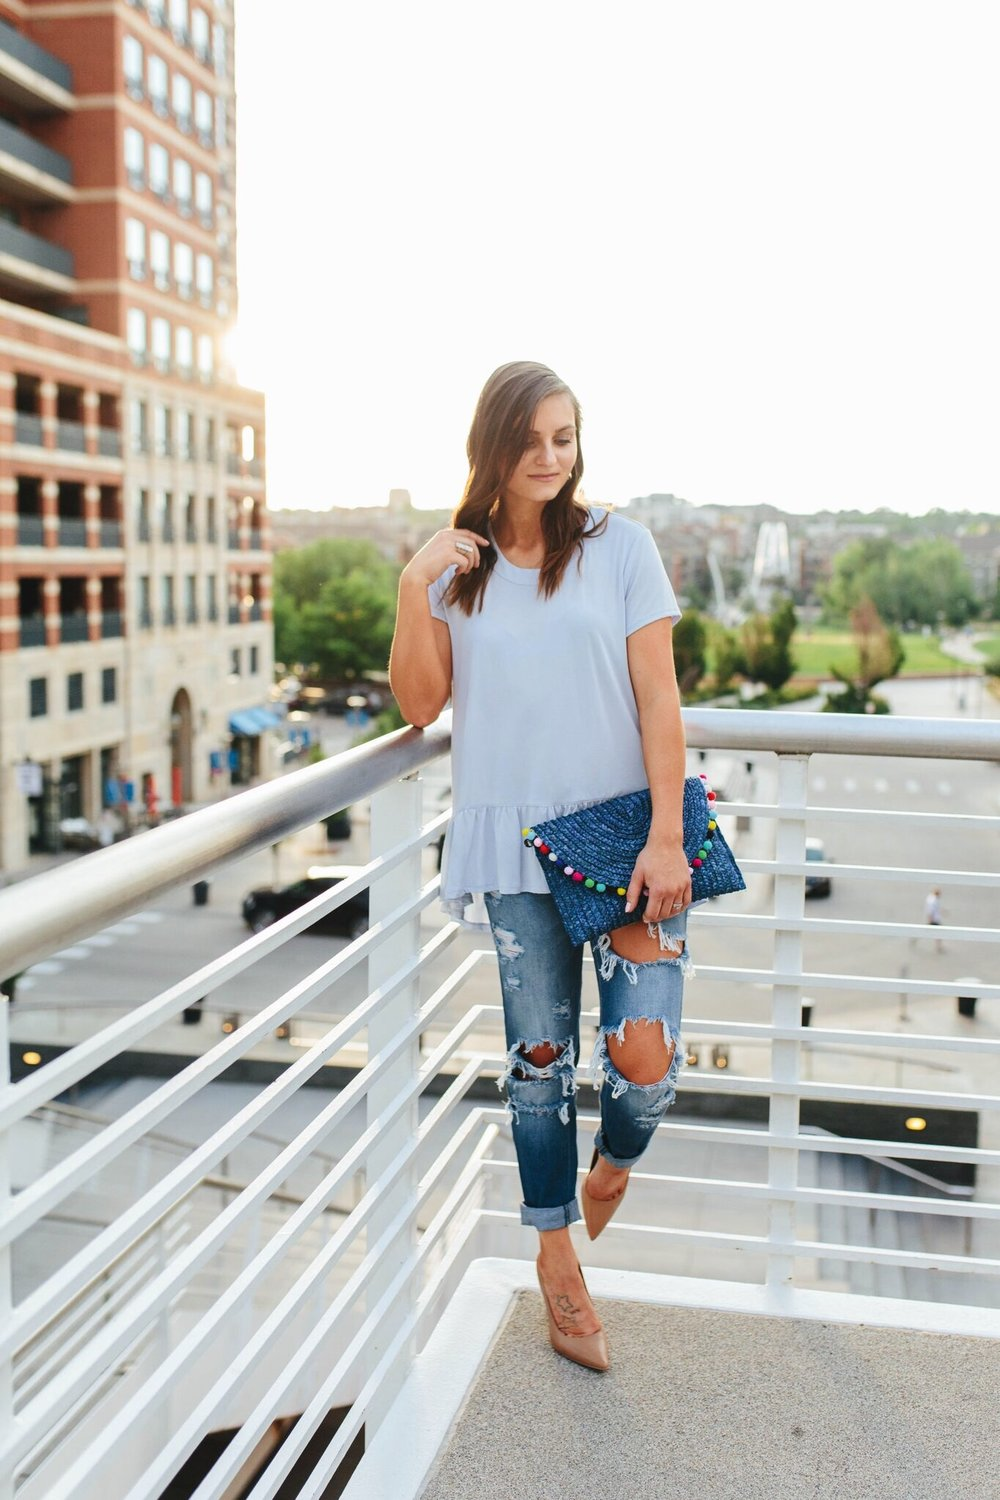 "<img src =""how-to-wear-boyfriend-jeans.jpg"" alt = ""fashion-bloger-teddybearsandlipstick-leans-against-the-rails-of-millenium-bridge-in-dowtown-denver-one-heeled-shoe-resting-on-the-rails-as-her-gaze-is-fixed-on-the-distant-view-destroyed-boyfirend-jeans-are-the-hghlight-of-her-outfit"">"